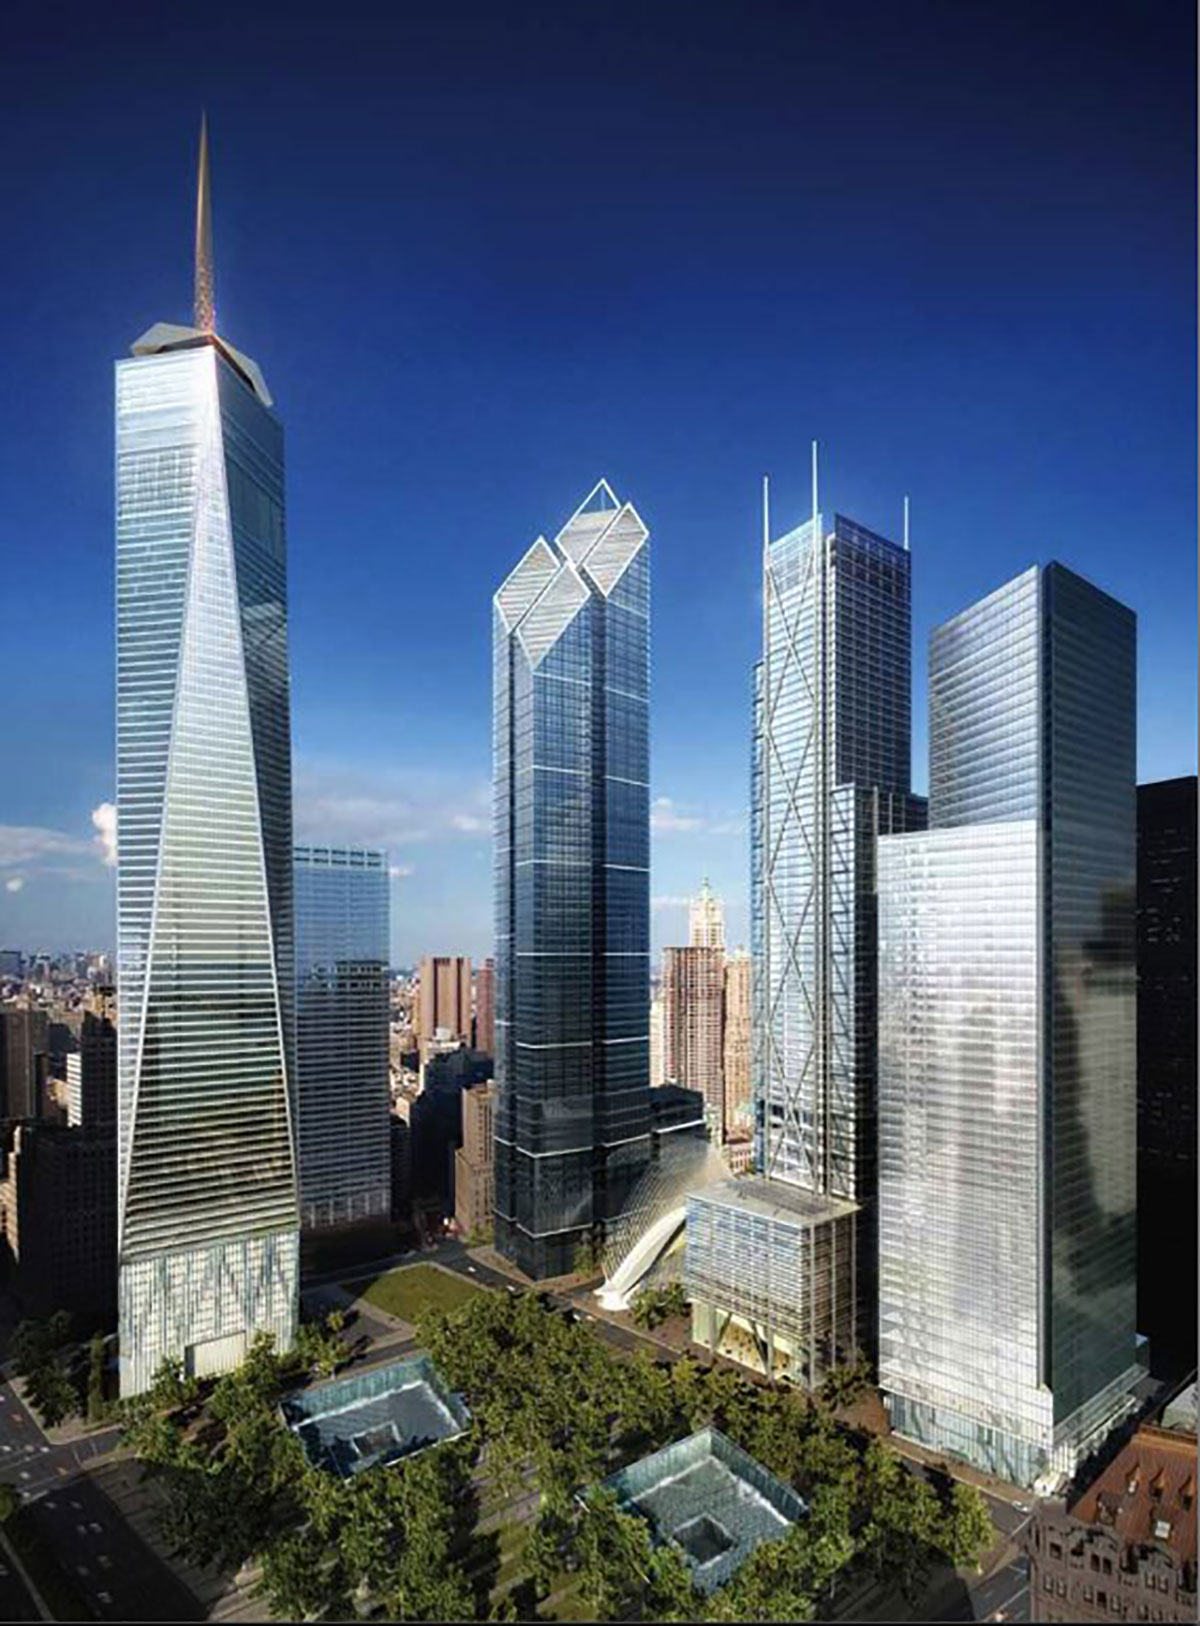 Aerial view of the rebuilding project on Ground Zero for the Rising: Rebuilding Ground Zero documentary Co-produced by Danny Forster and Steven Spielberg about the rebuilding of the World Trade Center site in the wake of 9/11.